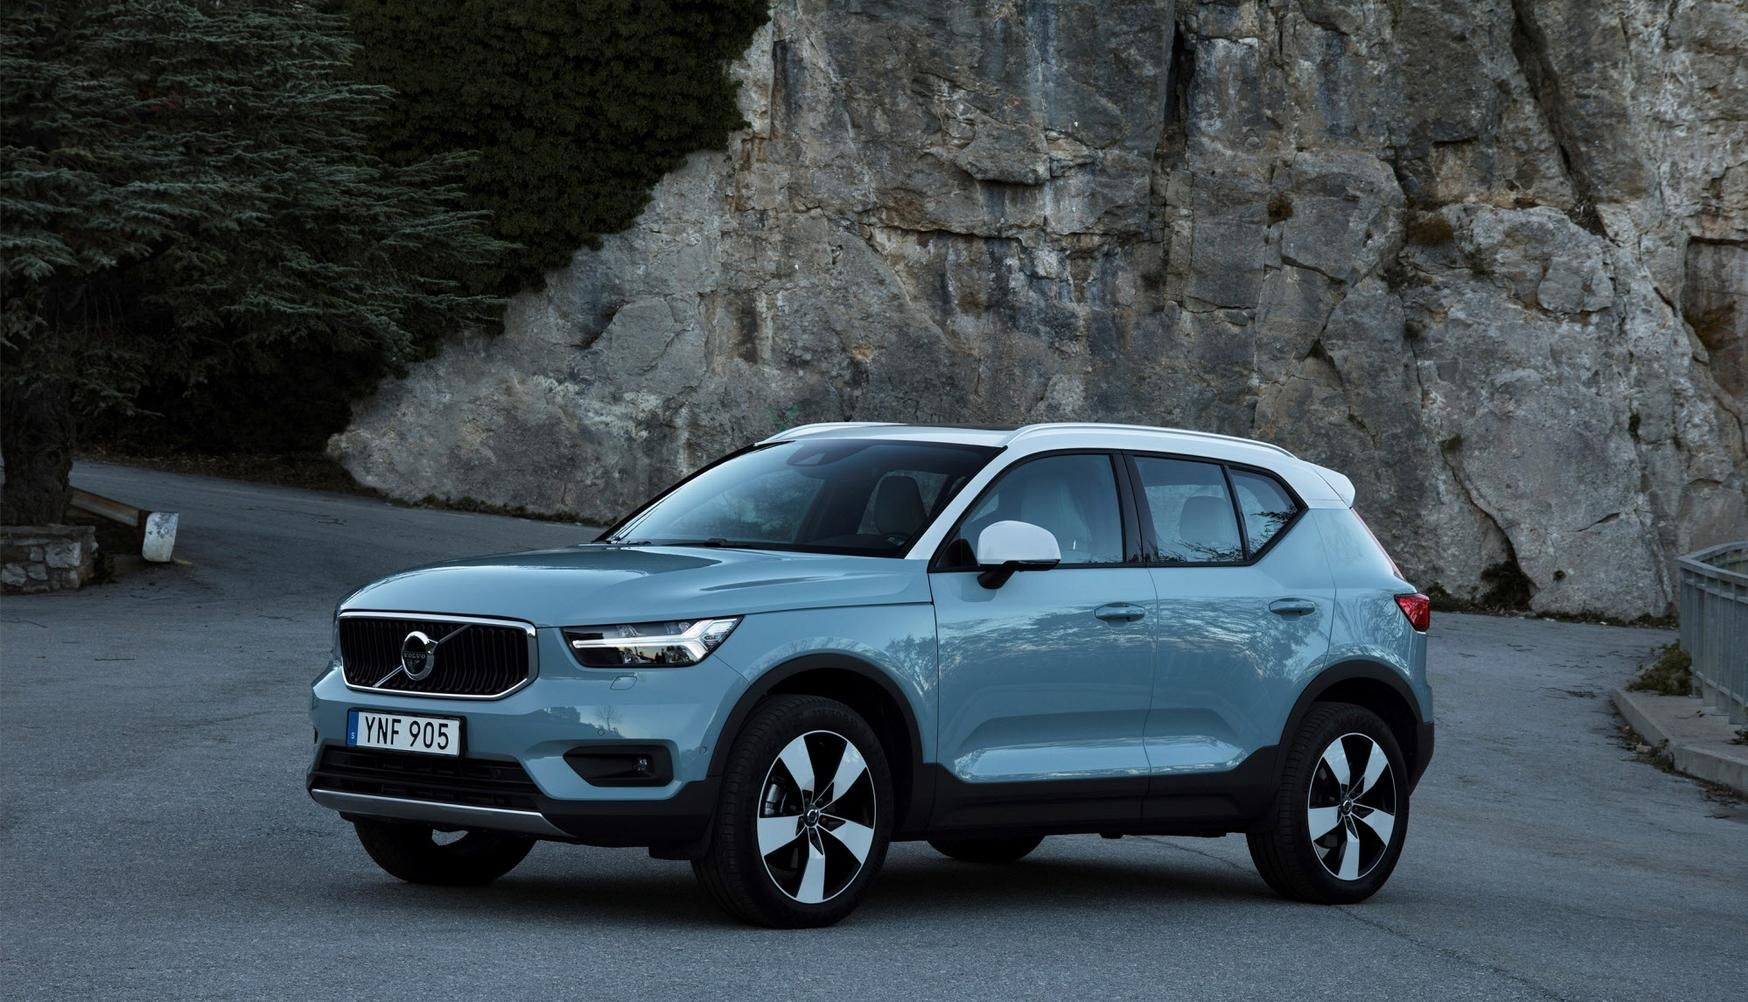 Volvo Aims To Change The Way People Buy Vehicles With Its New Xc40 Compact Suv This Spring Best Small Suv Volvo Suv Small Suv